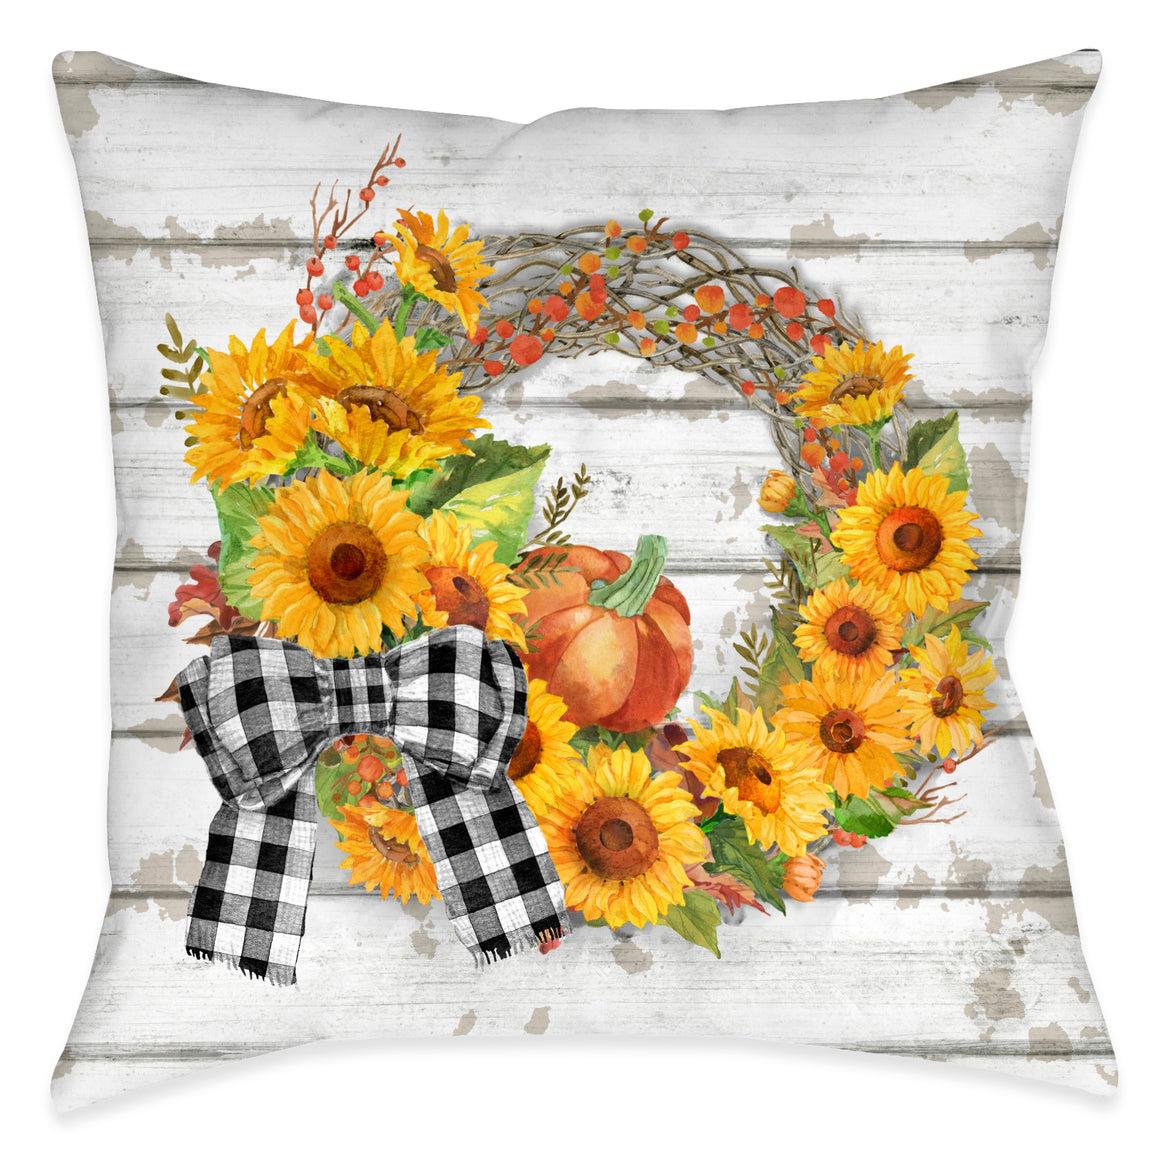 Harvest Wreath Indoor Decorative Pillow